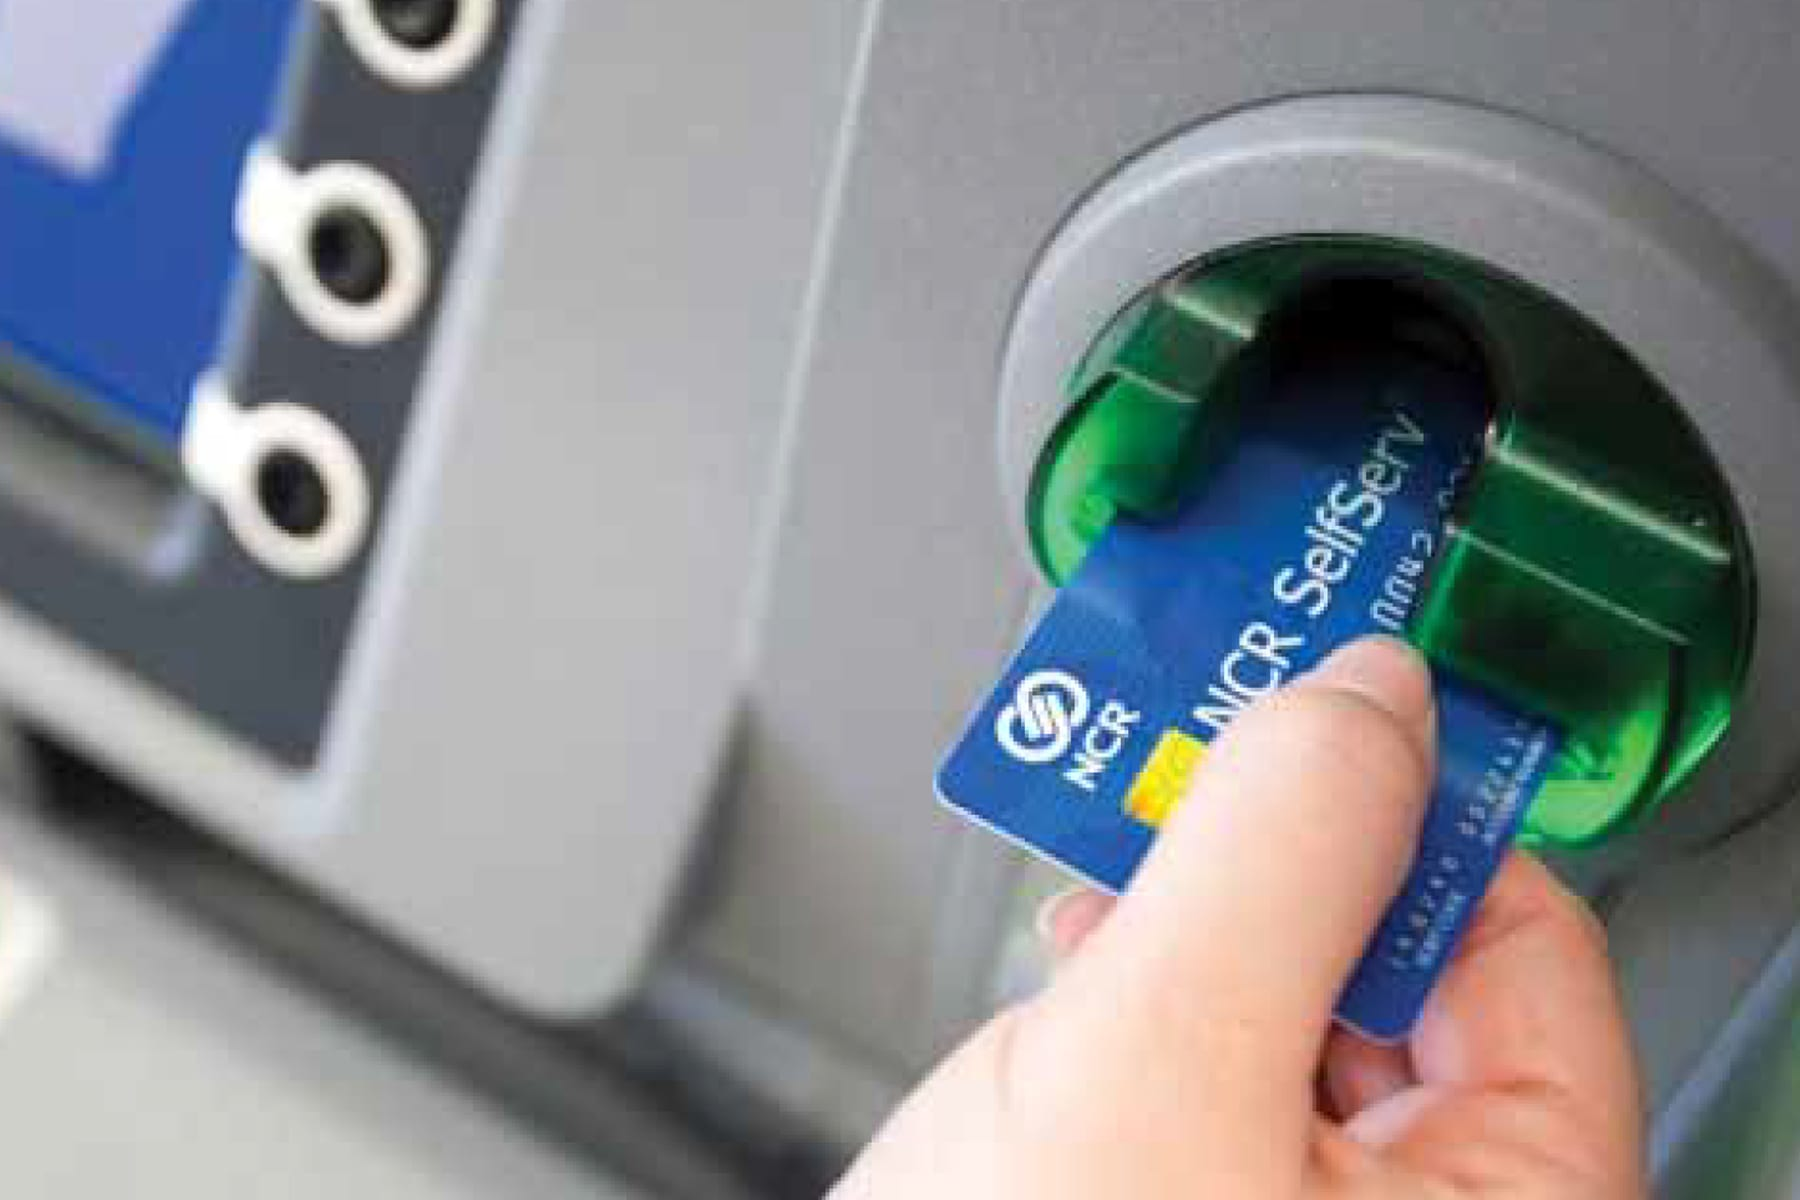 NCR, celebrating 50th anniversary of the ATM, takes on the grocery wars